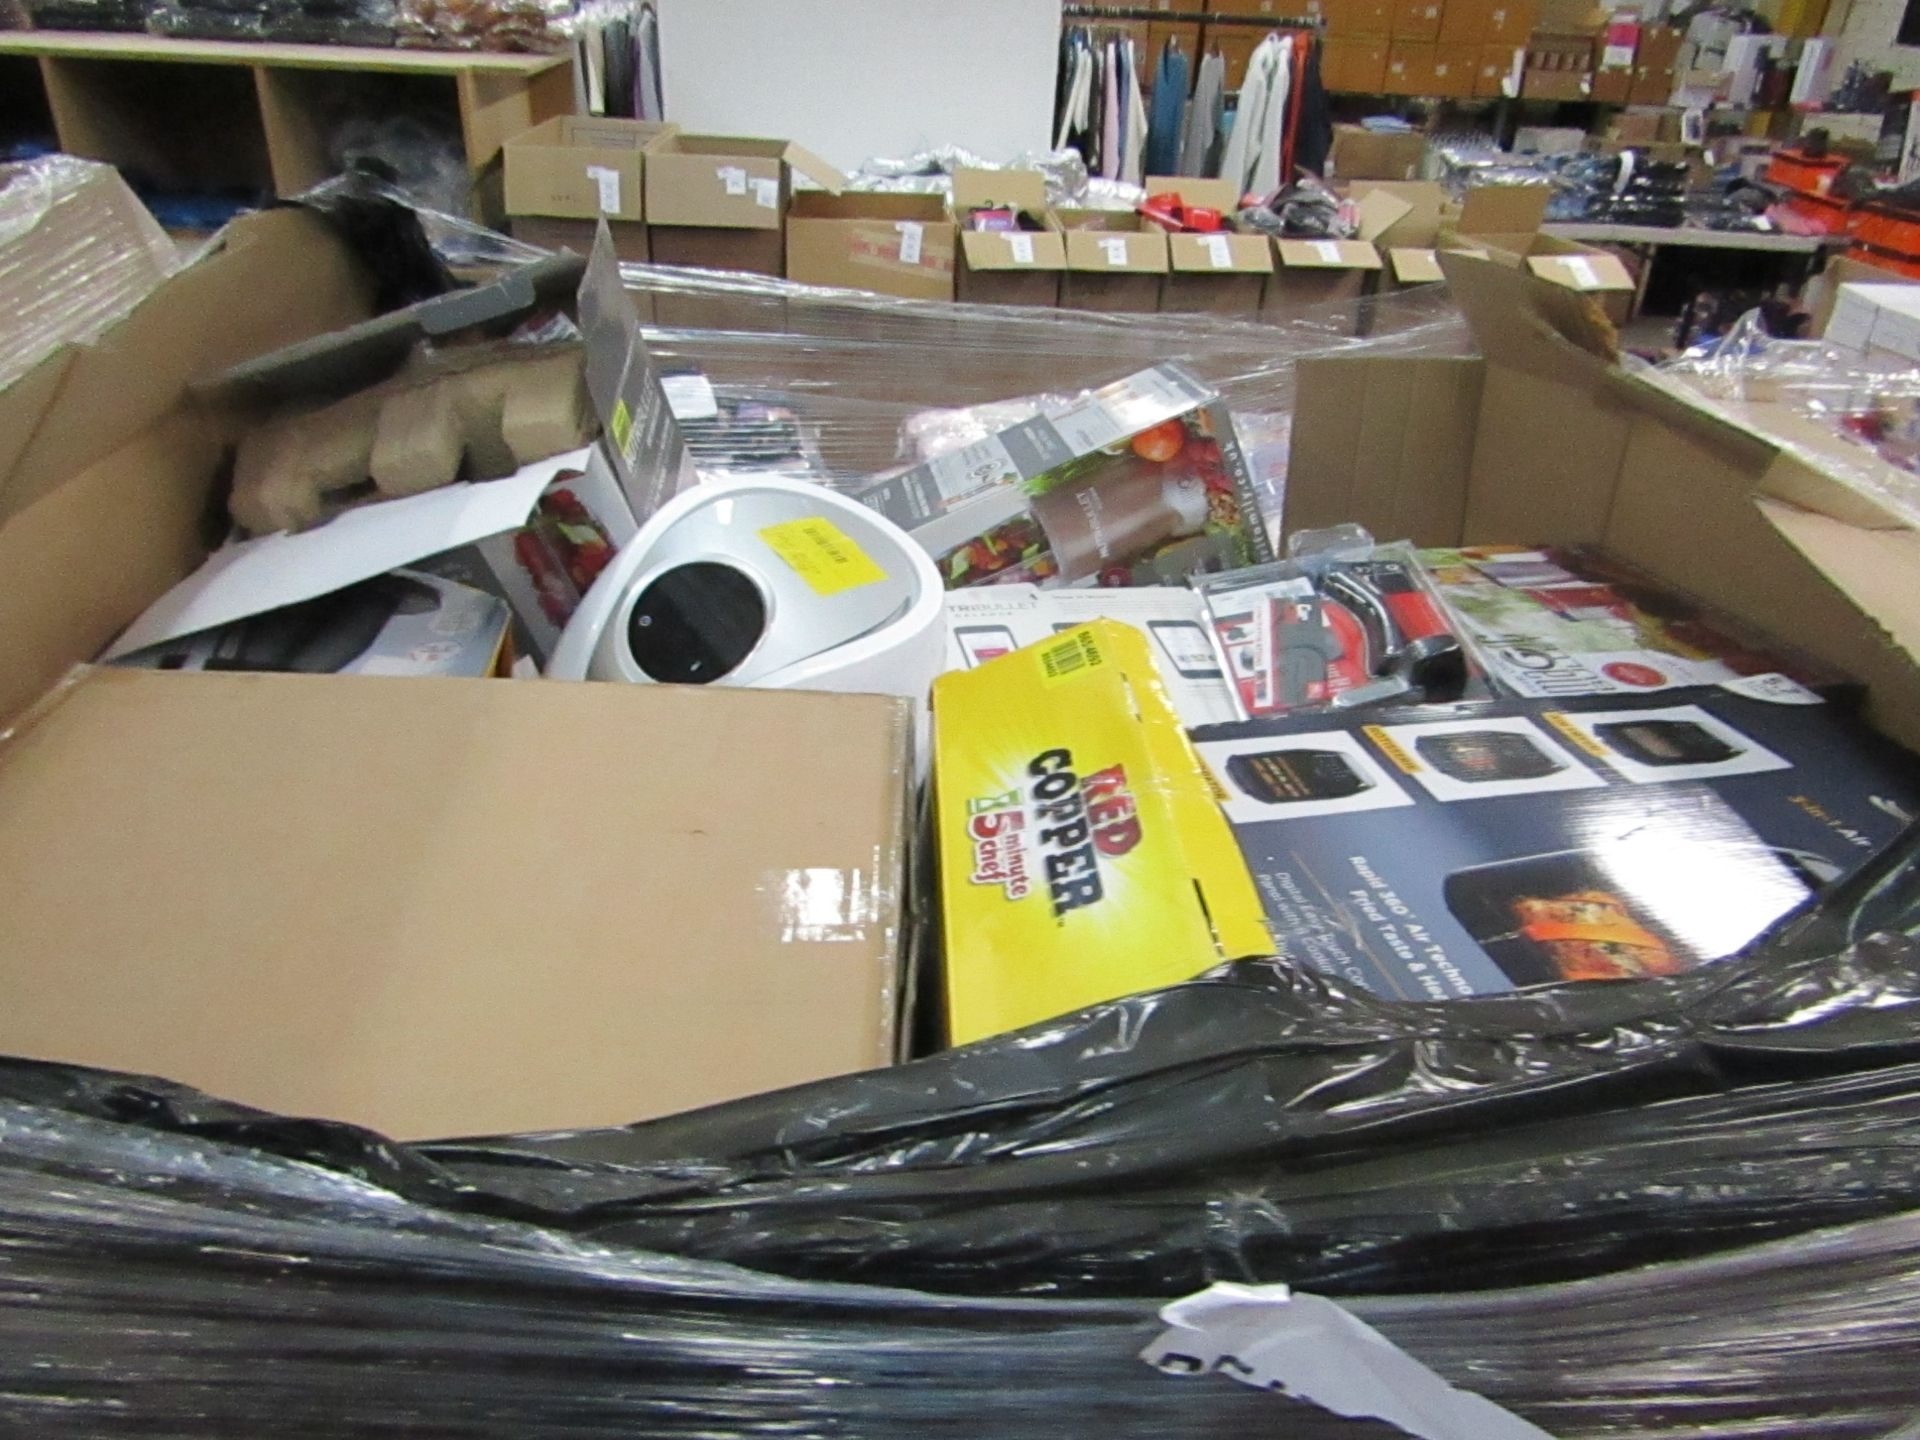 Lot 4 - | APPROX 49X | THE PALLET CONTAINS NUTRI BULLETS, AIR HAWKS, AIR FRYER XL'S, RED COPPER CHEFS, X